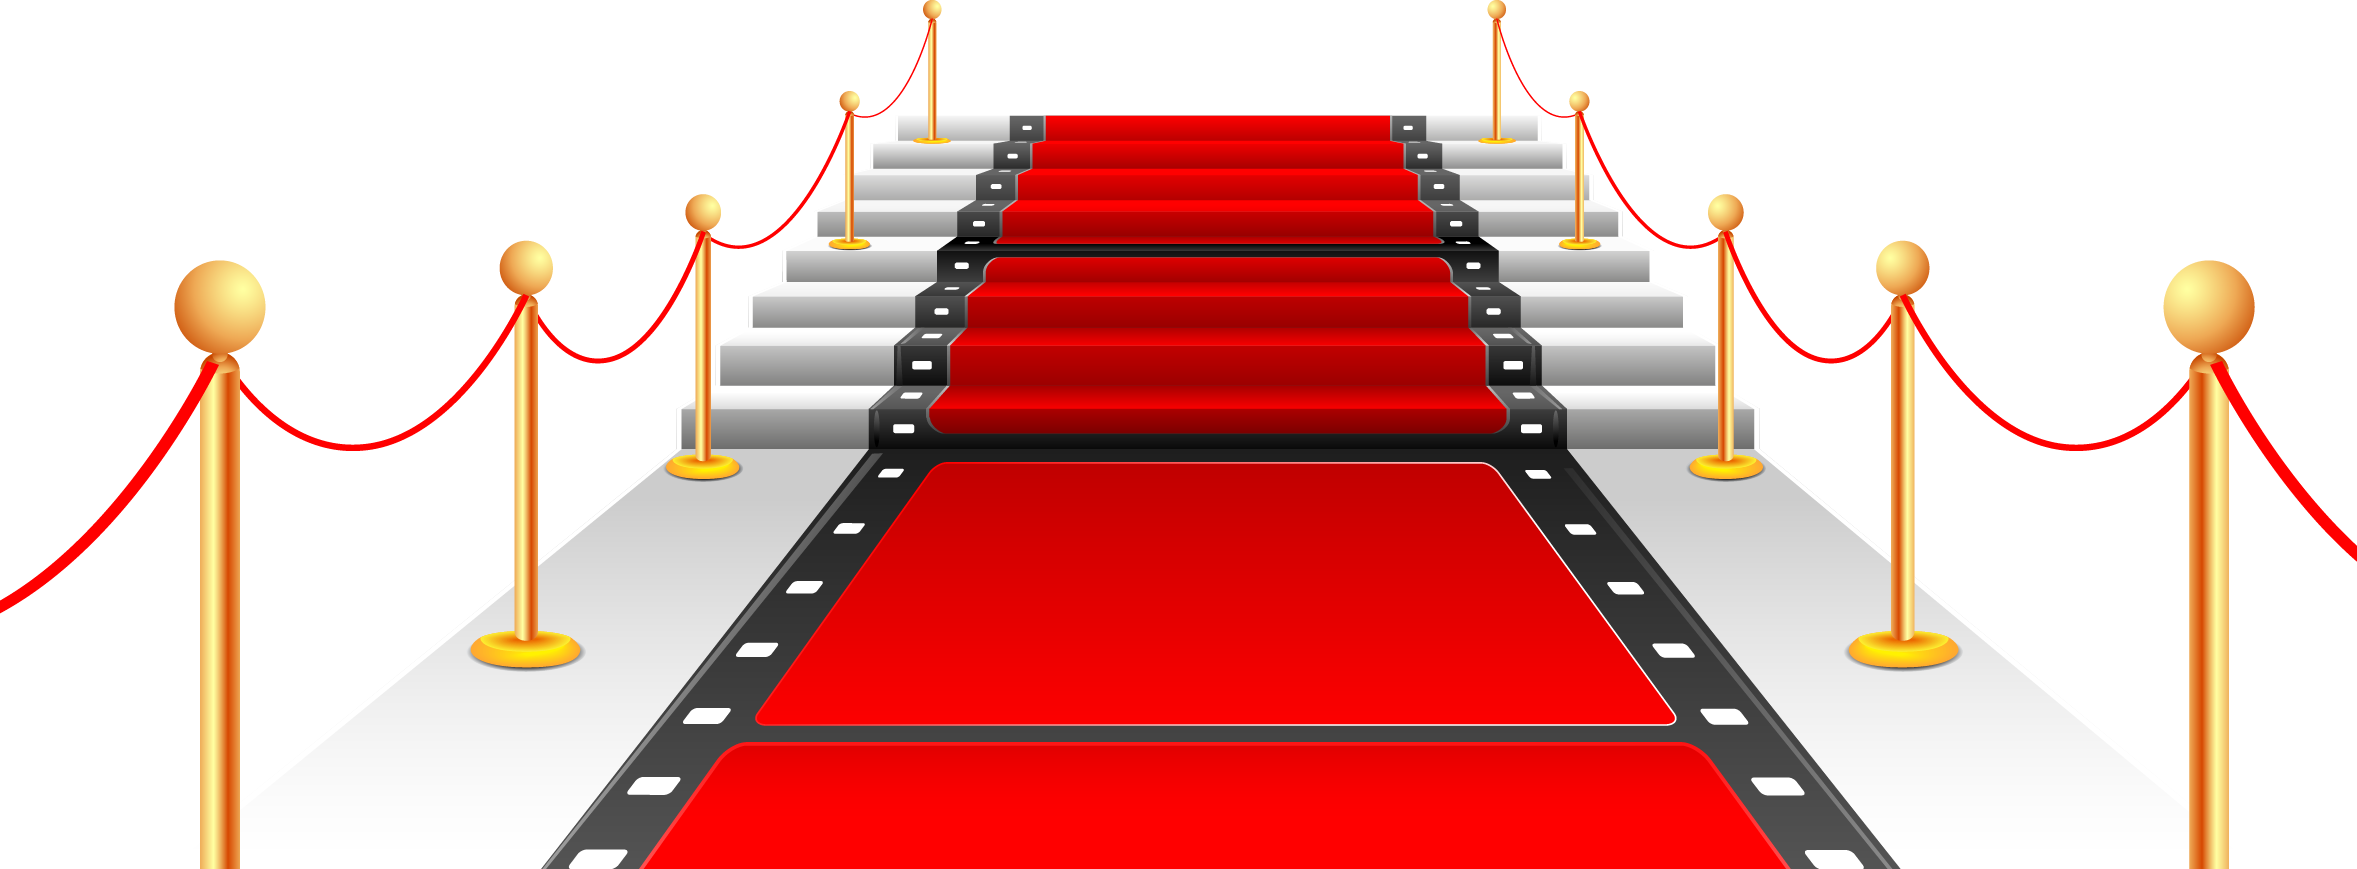 Png images free download. Staircase clipart red carpet